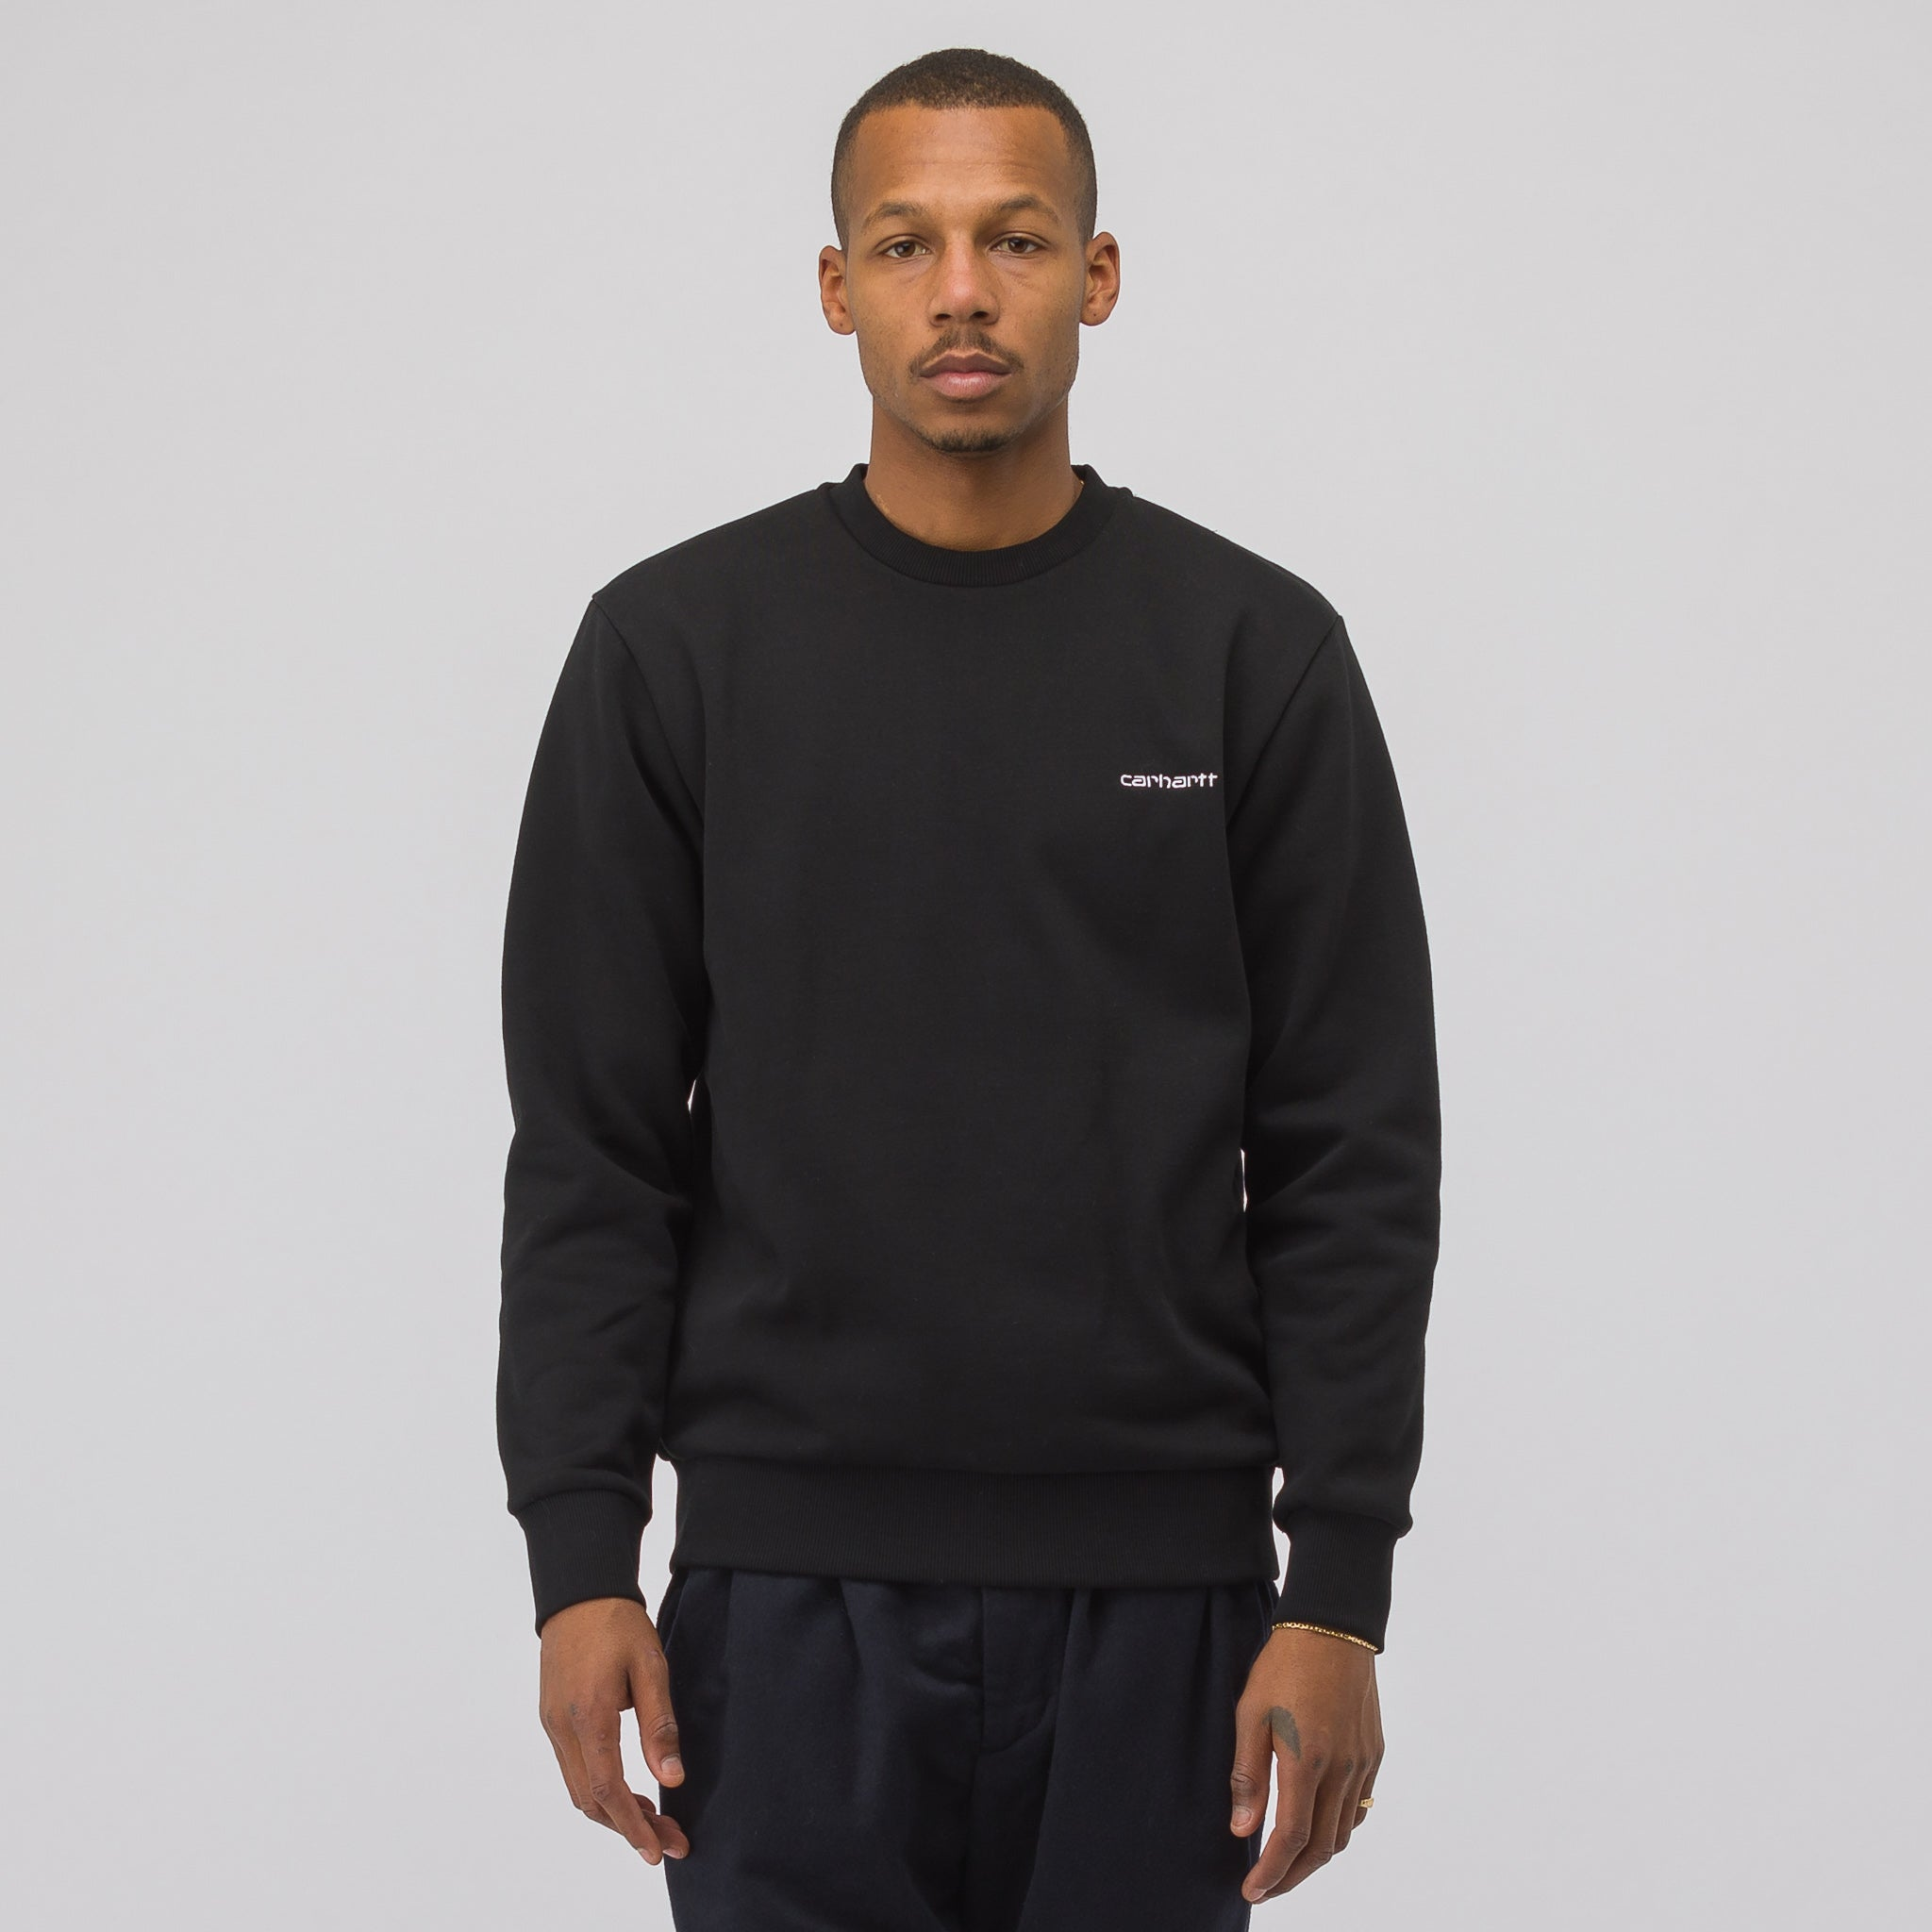 Script Embroidery Sweatshirt in Black